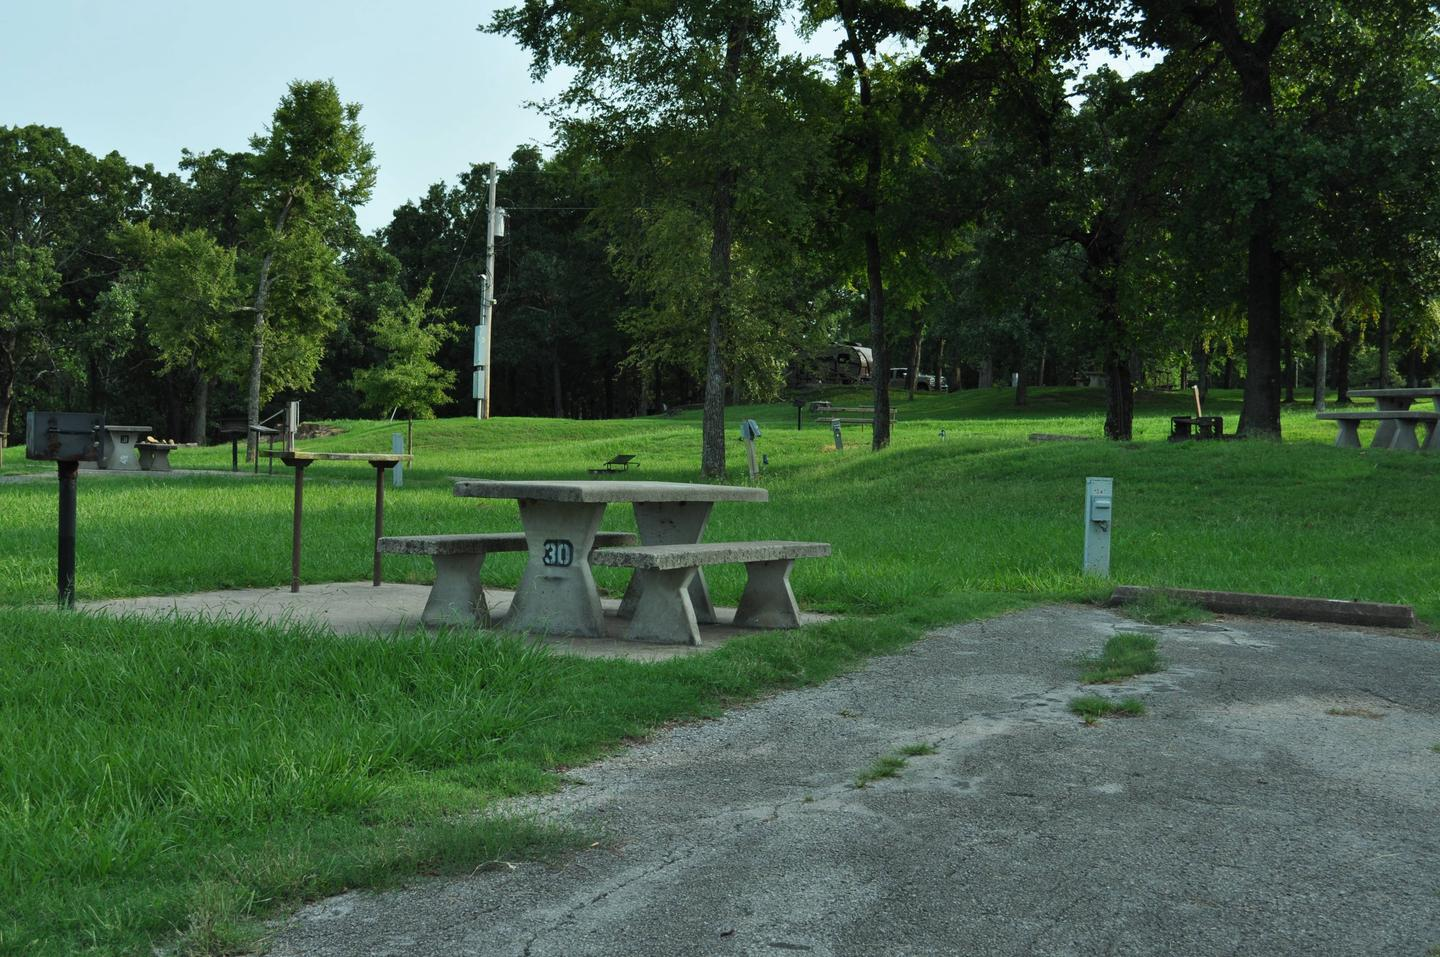 Site 30 is near site 29, 62 & 63 and works will for families camping close together.Site 30 - Taylor Ferry